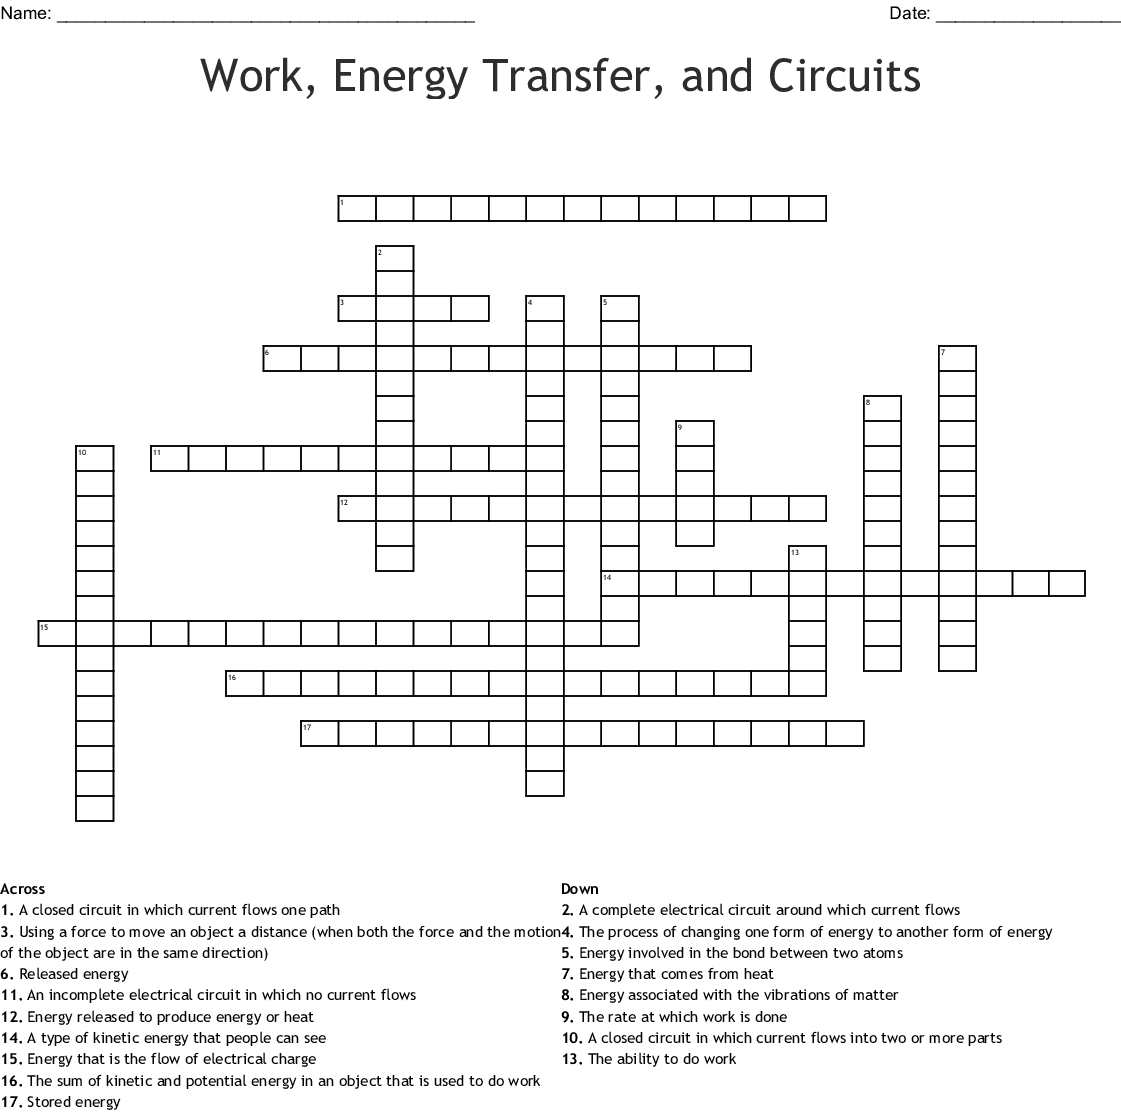 Work Energy Transfer And Circuits Crossword